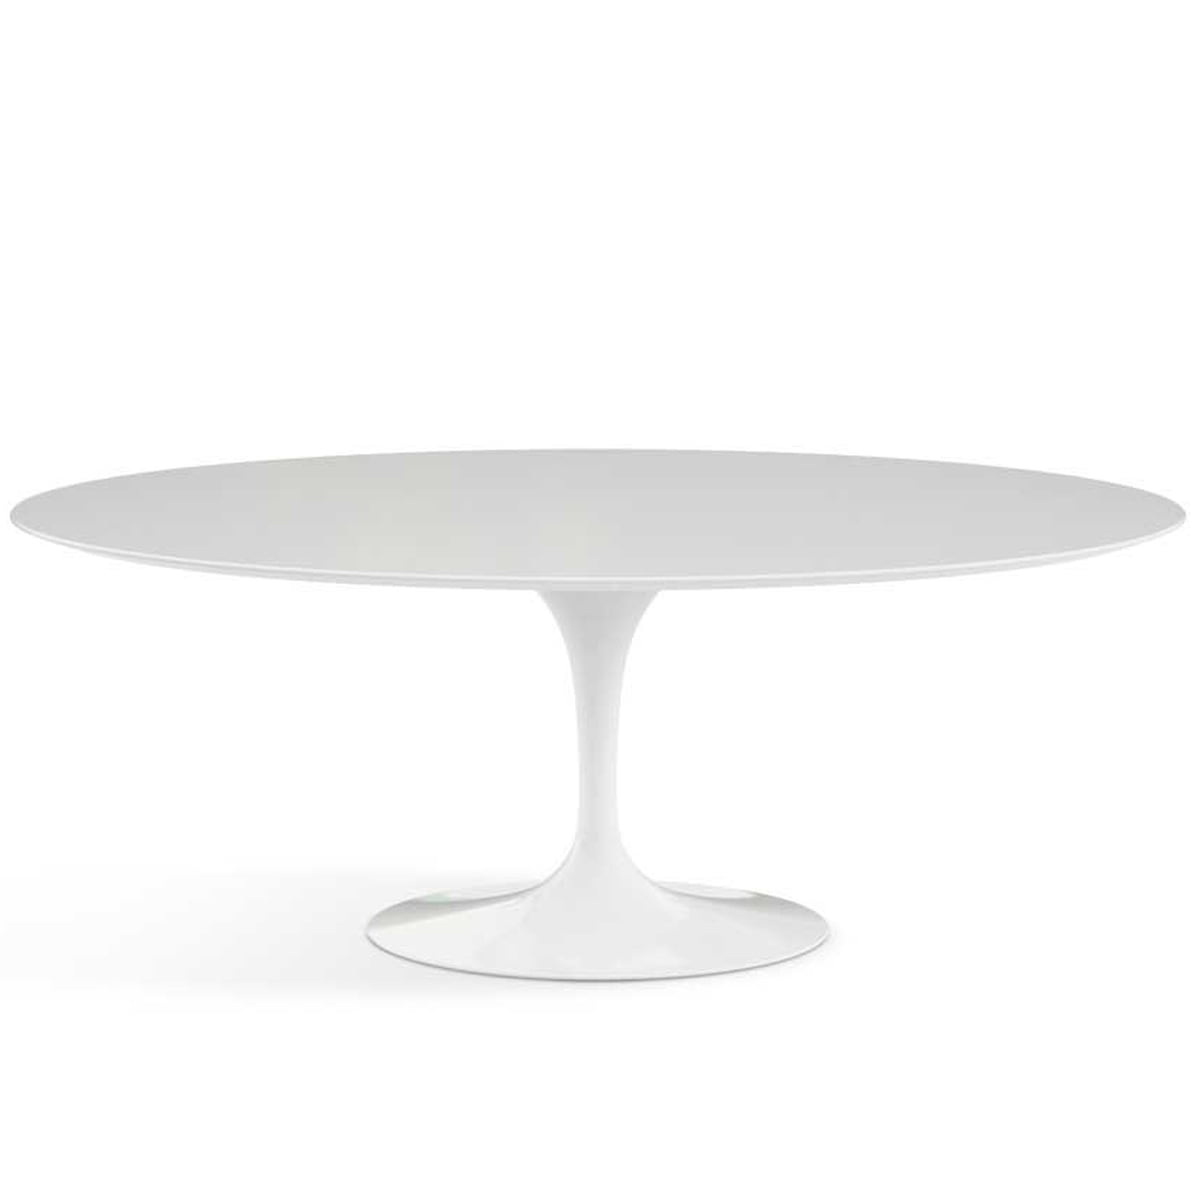 knoll saarinen tulip dining table oval - Saarinen Tulip Table